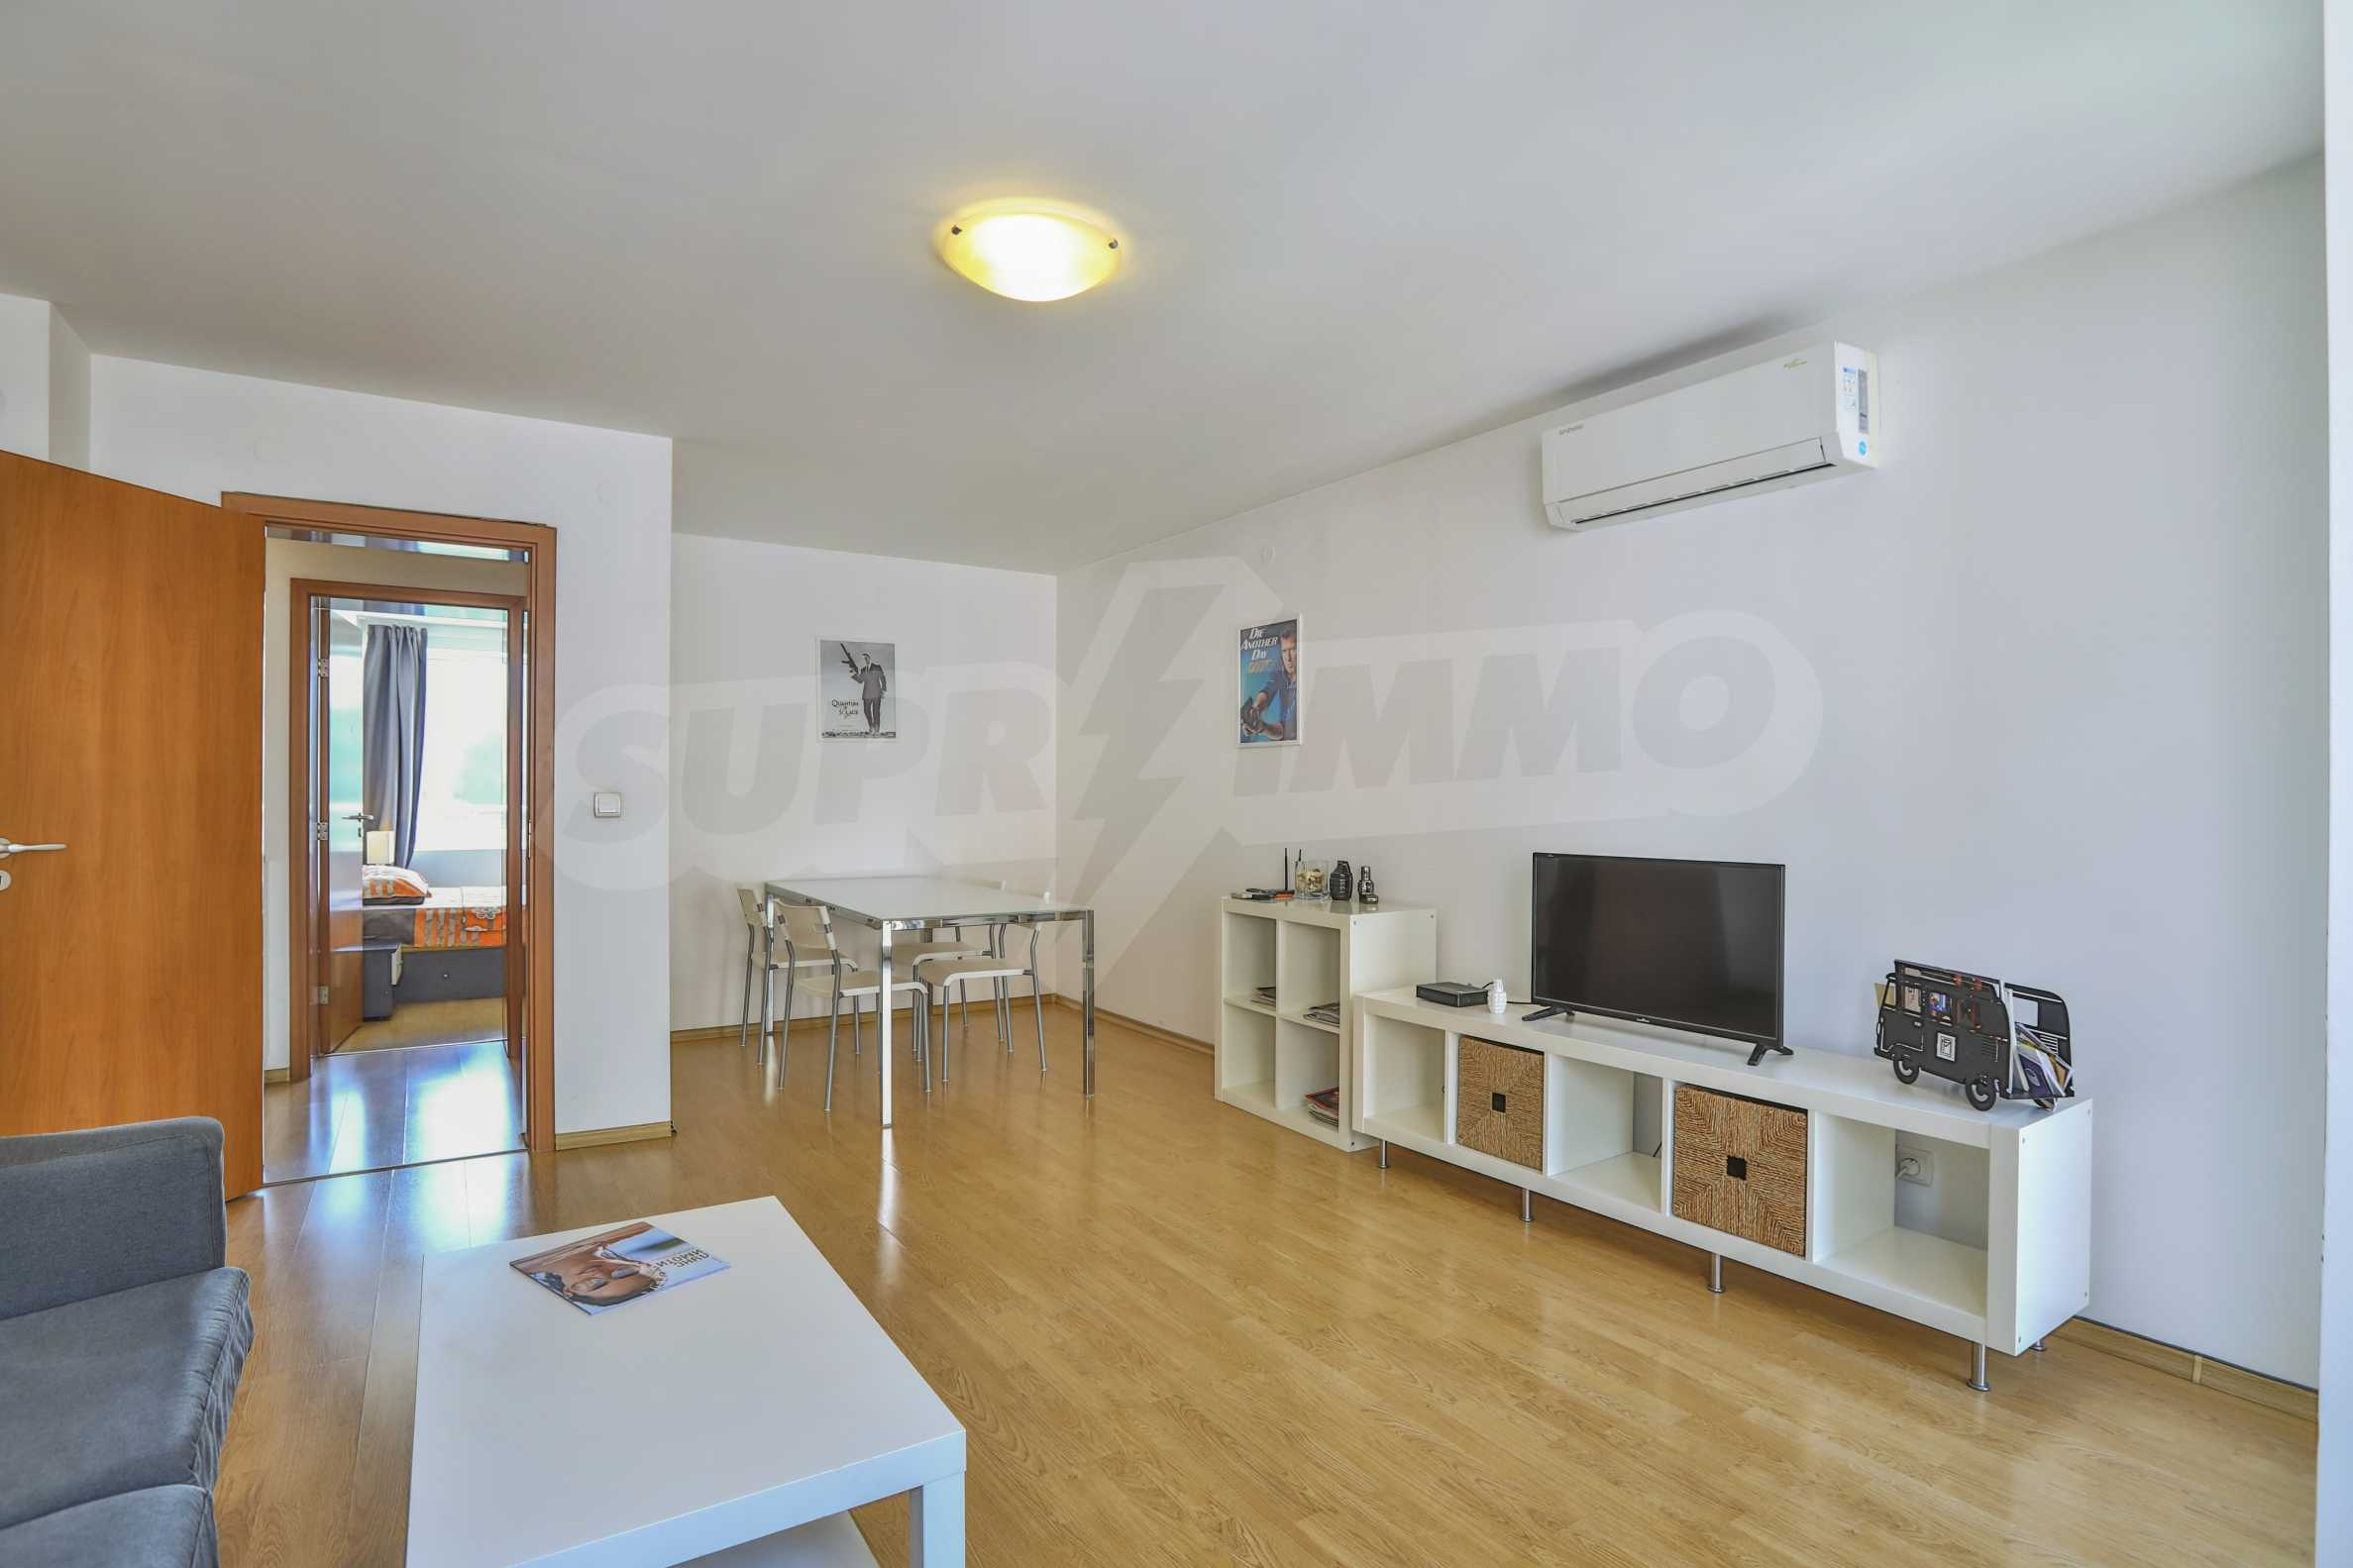 Two-bedroom apartment in the center with high rating on Airbnb 1